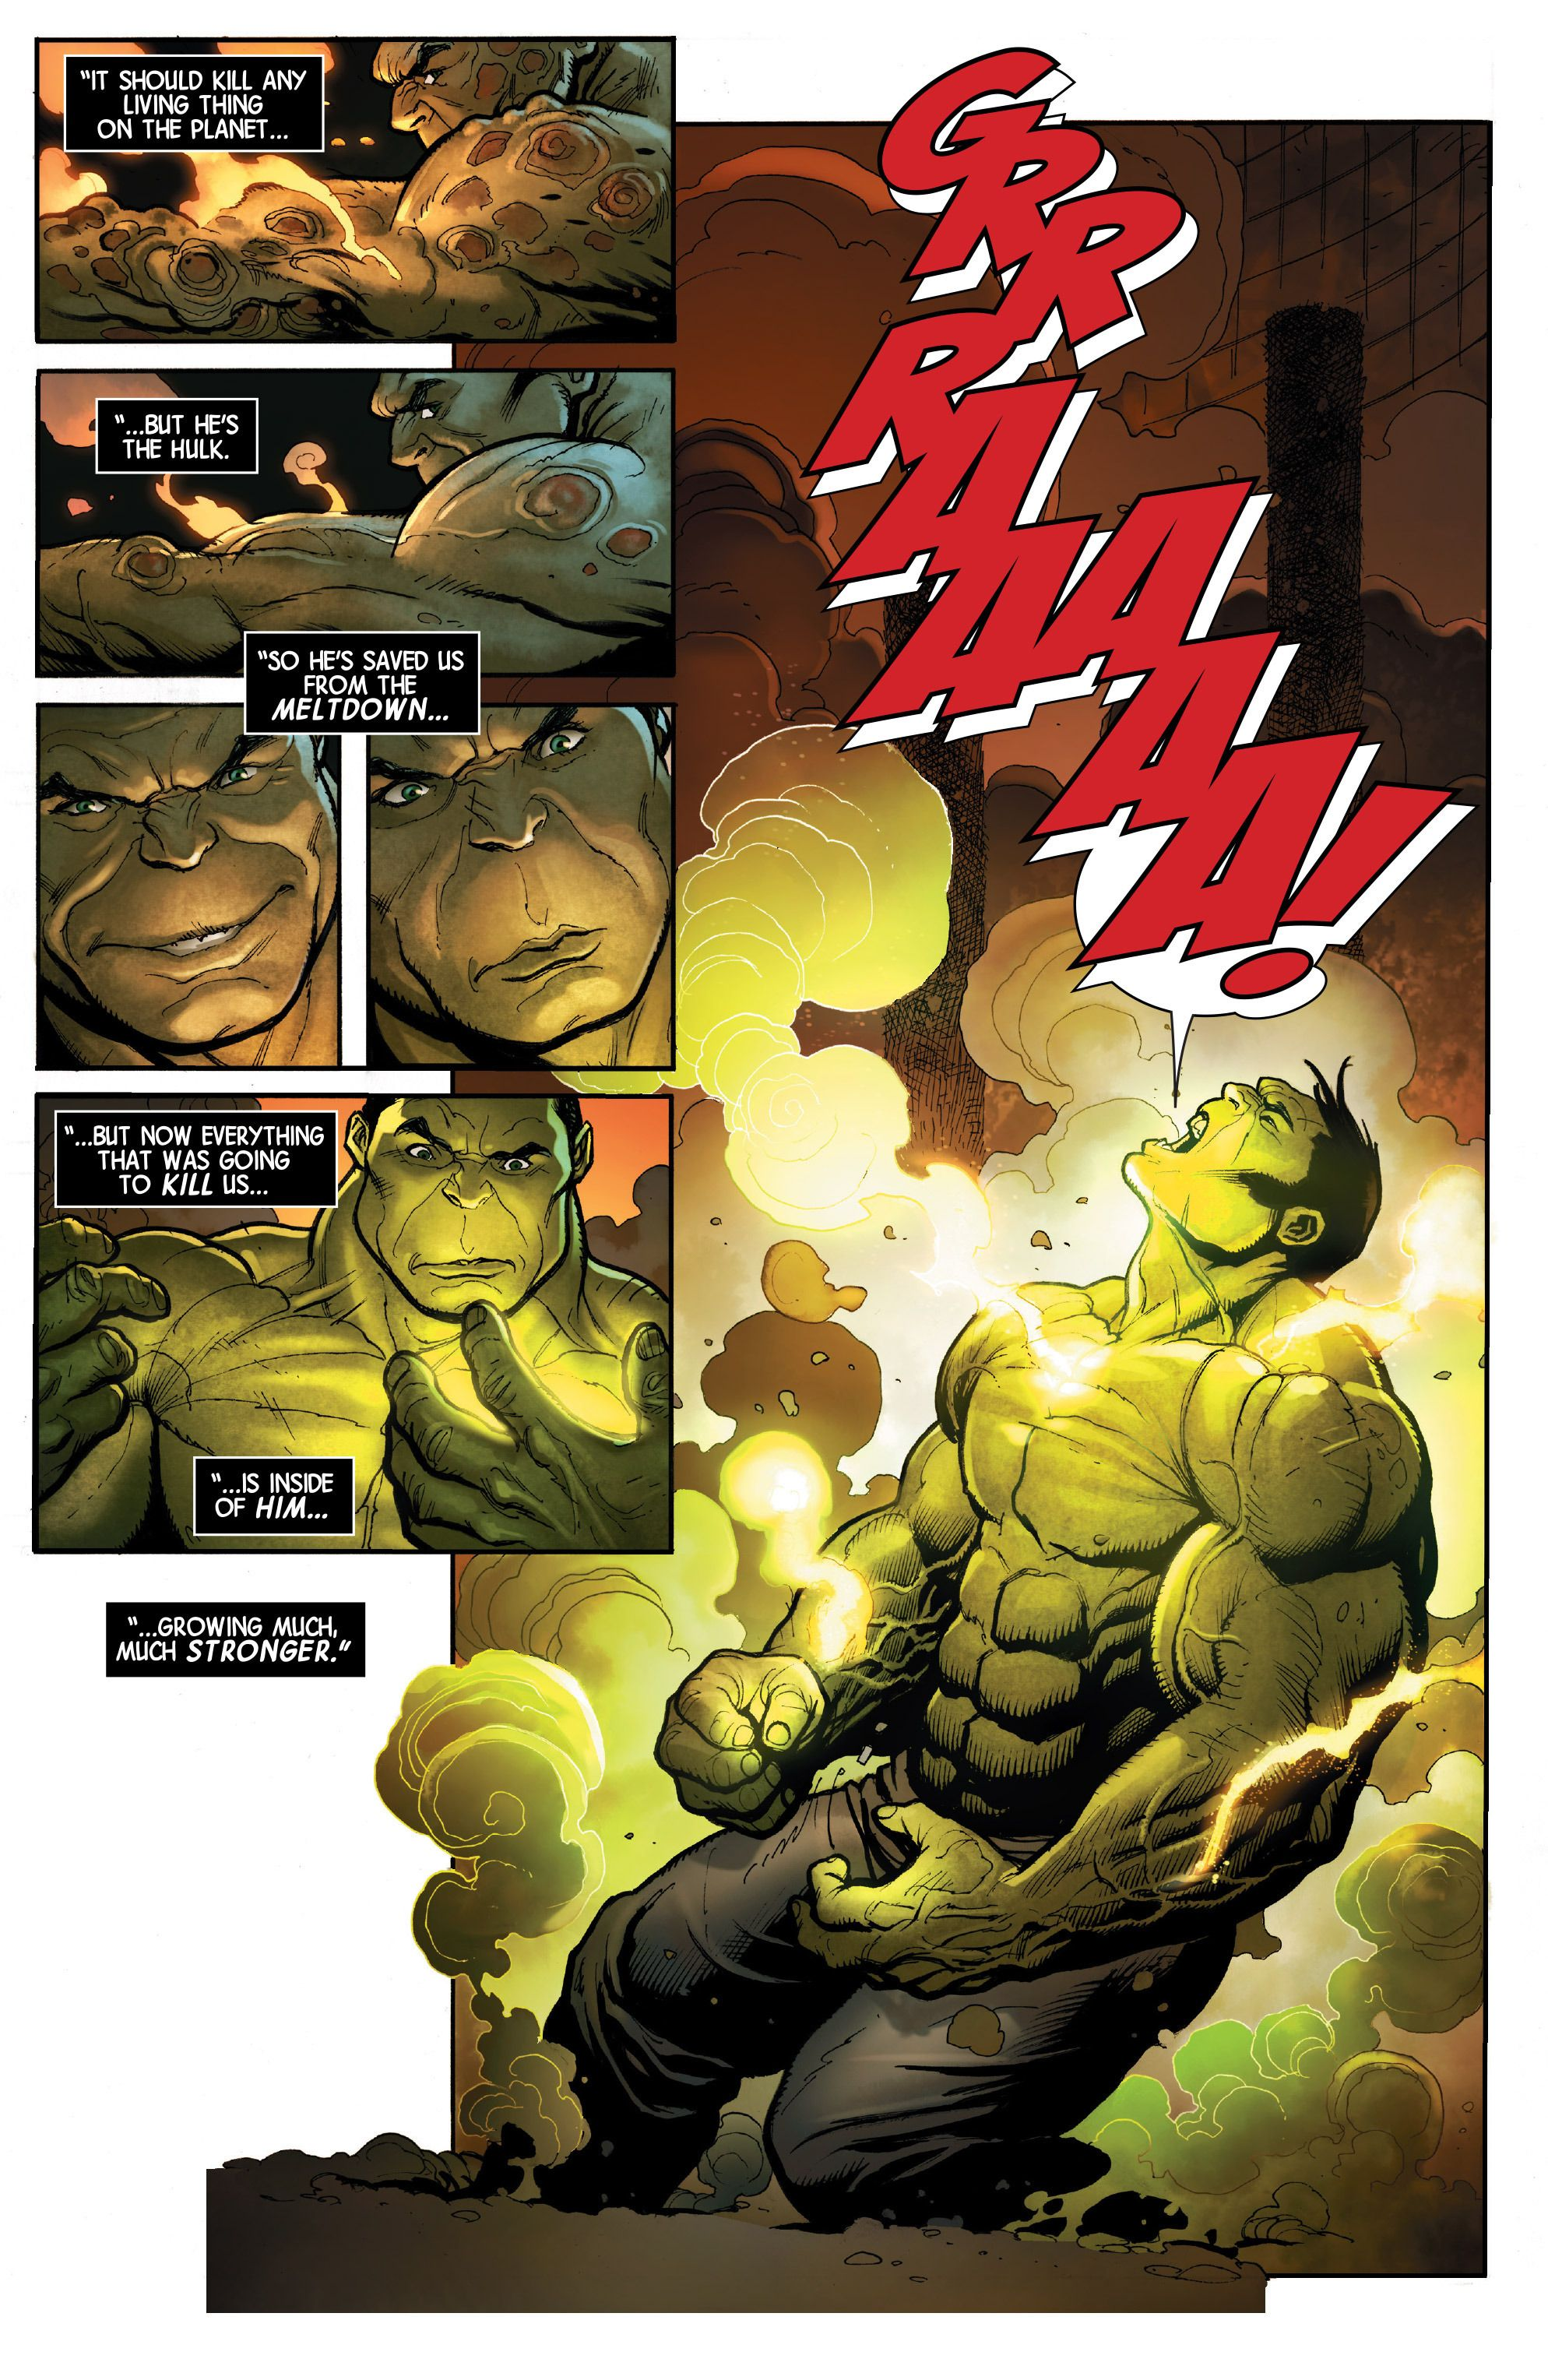 The totally awesome hulk 2016 1 page 20 the immortal hulk the totally awesome hulk 2016 1 page 20 publicscrutiny Images